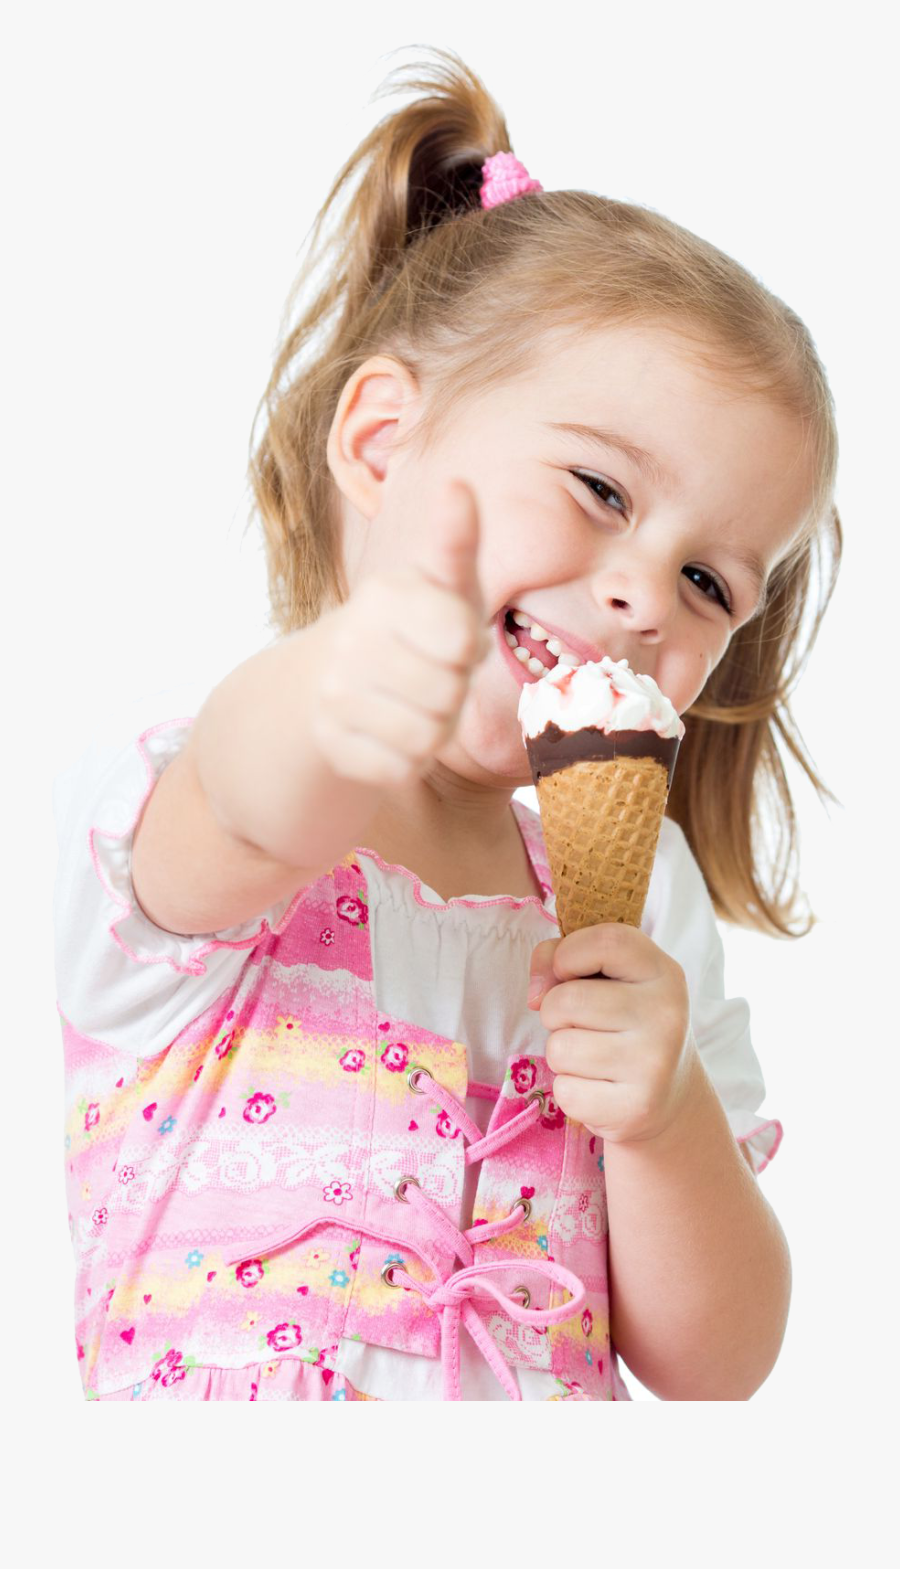 Summer Kids Eating Ice Cream Hand Drawn Illustration, Summer, Cute  Characters, Ice Cream PNG Transparent Clipart Image and PSD File for Free  Download